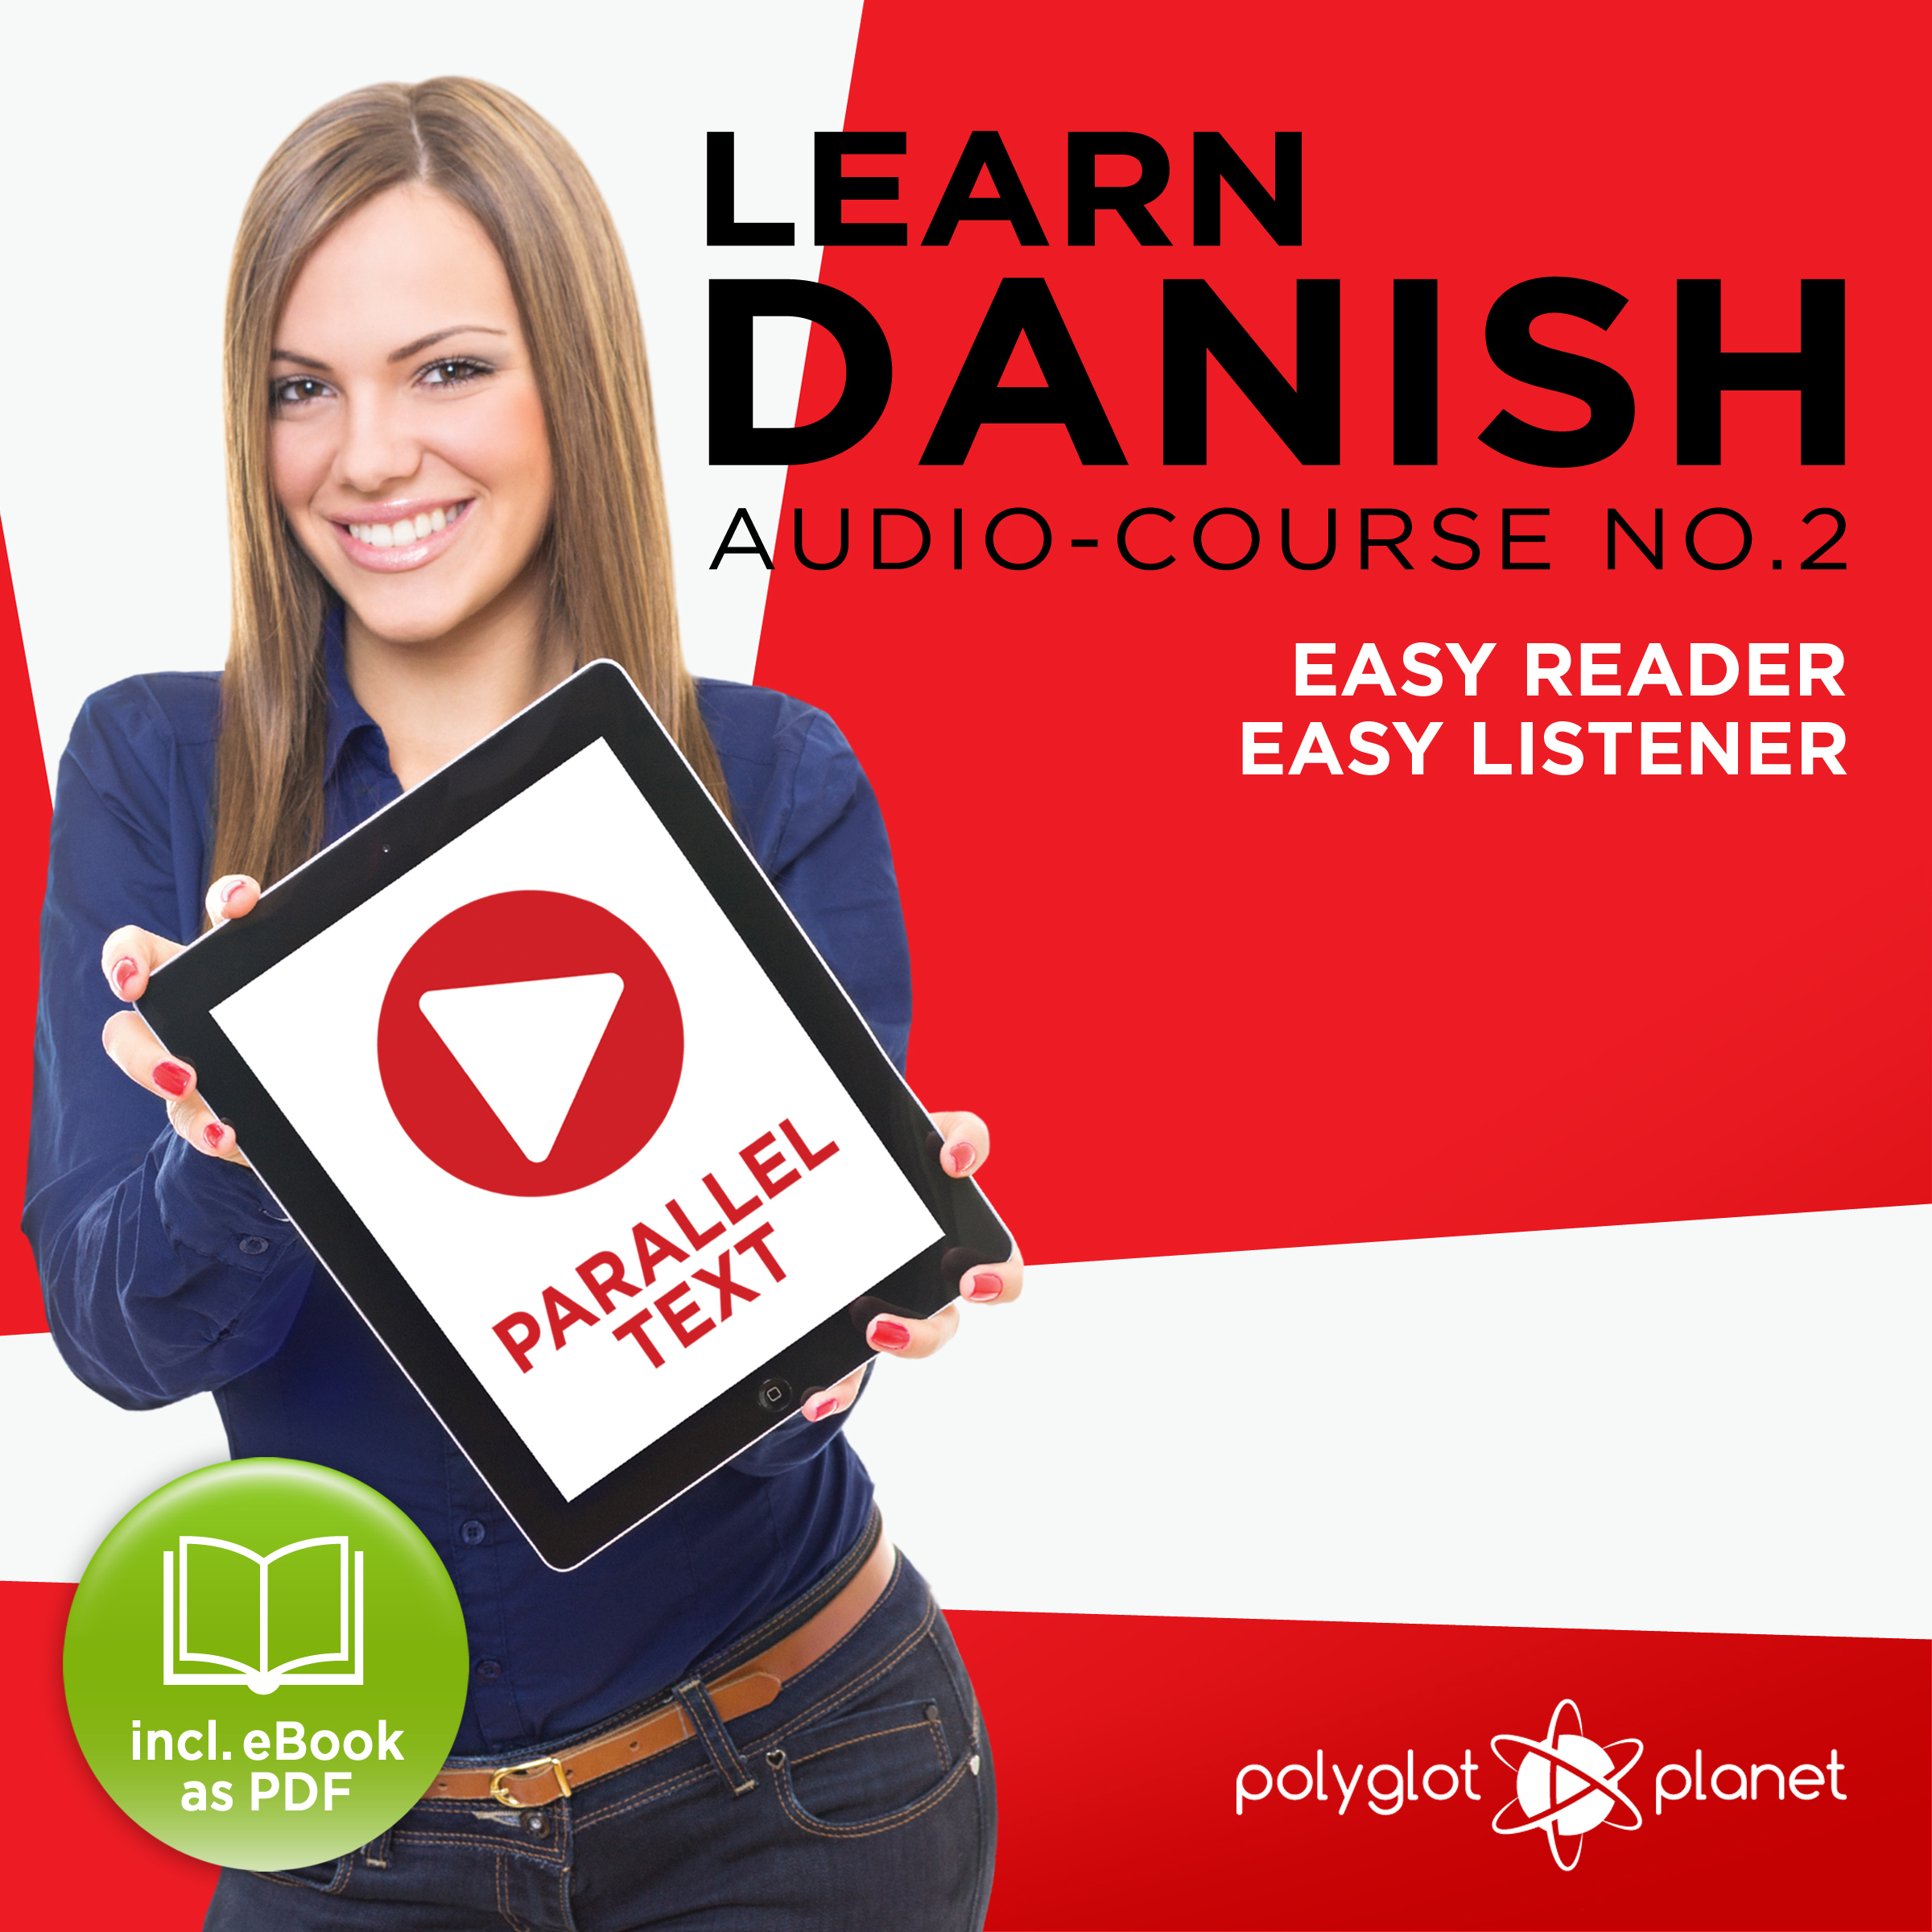 Printable Learn Danish - Easy Listener - Easy Reader - Parallel Text Danish Audio Course No. 2 Audiobook Cover Art